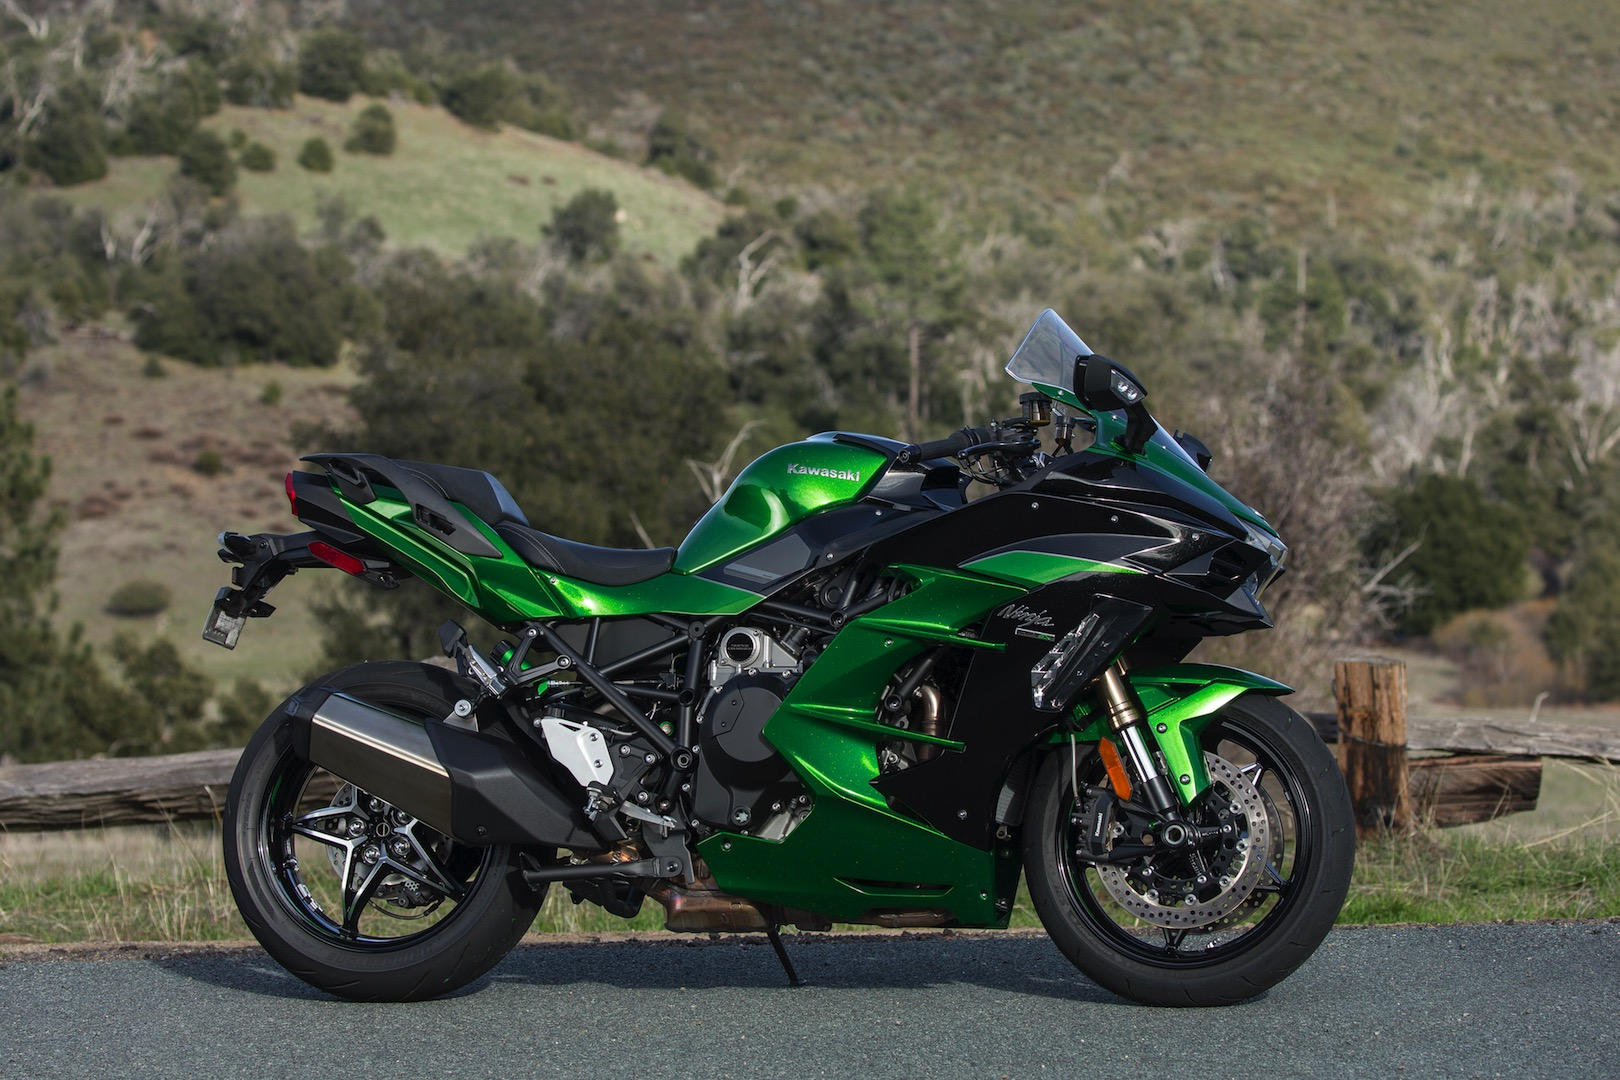 2018 Kawasaki Ninja H2 SX SE Review | 24 Fast Facts